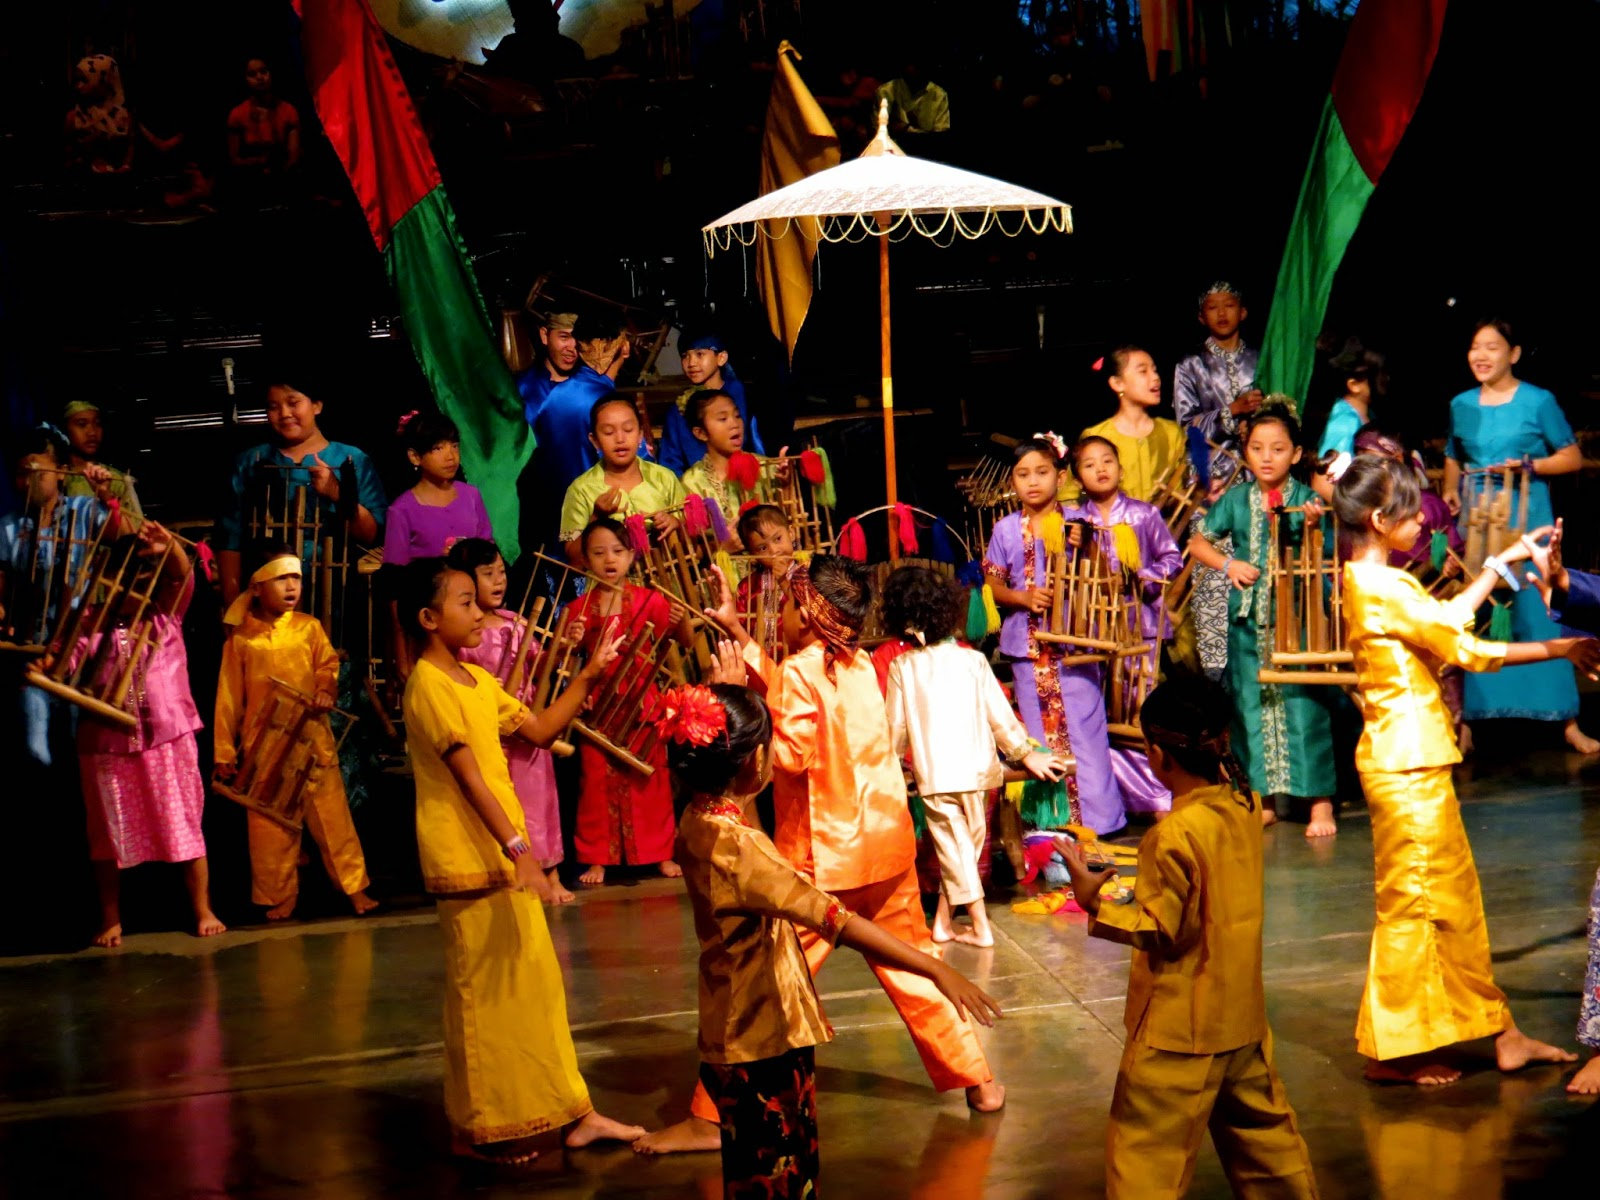 Saung Angklung Udio cultural show